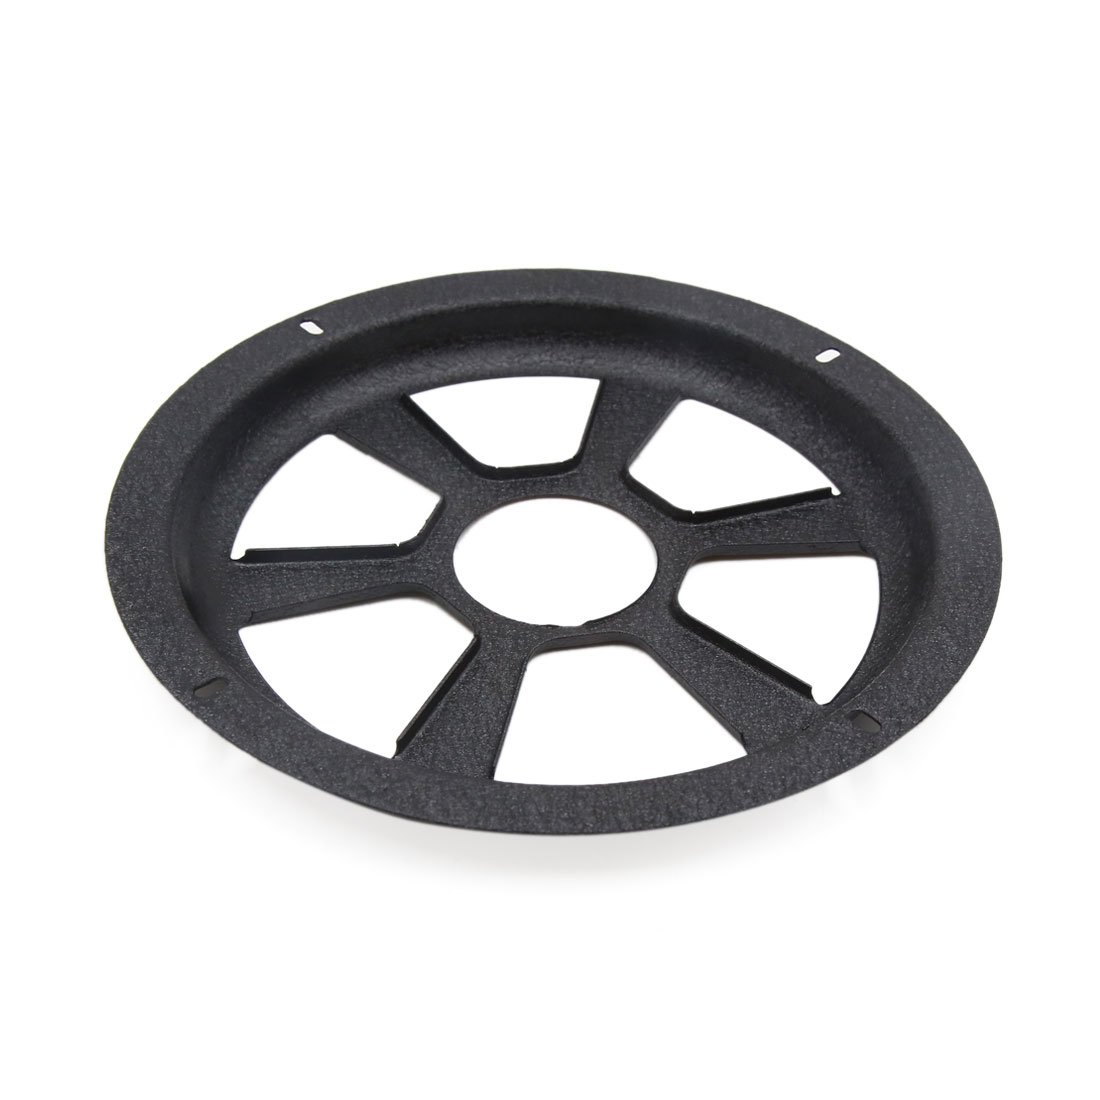 uxcell 8 Inch Dia Iron Car Vehicle Audio Speaker Subwoofer Grill Protective Cover by uxcell (Image #2)